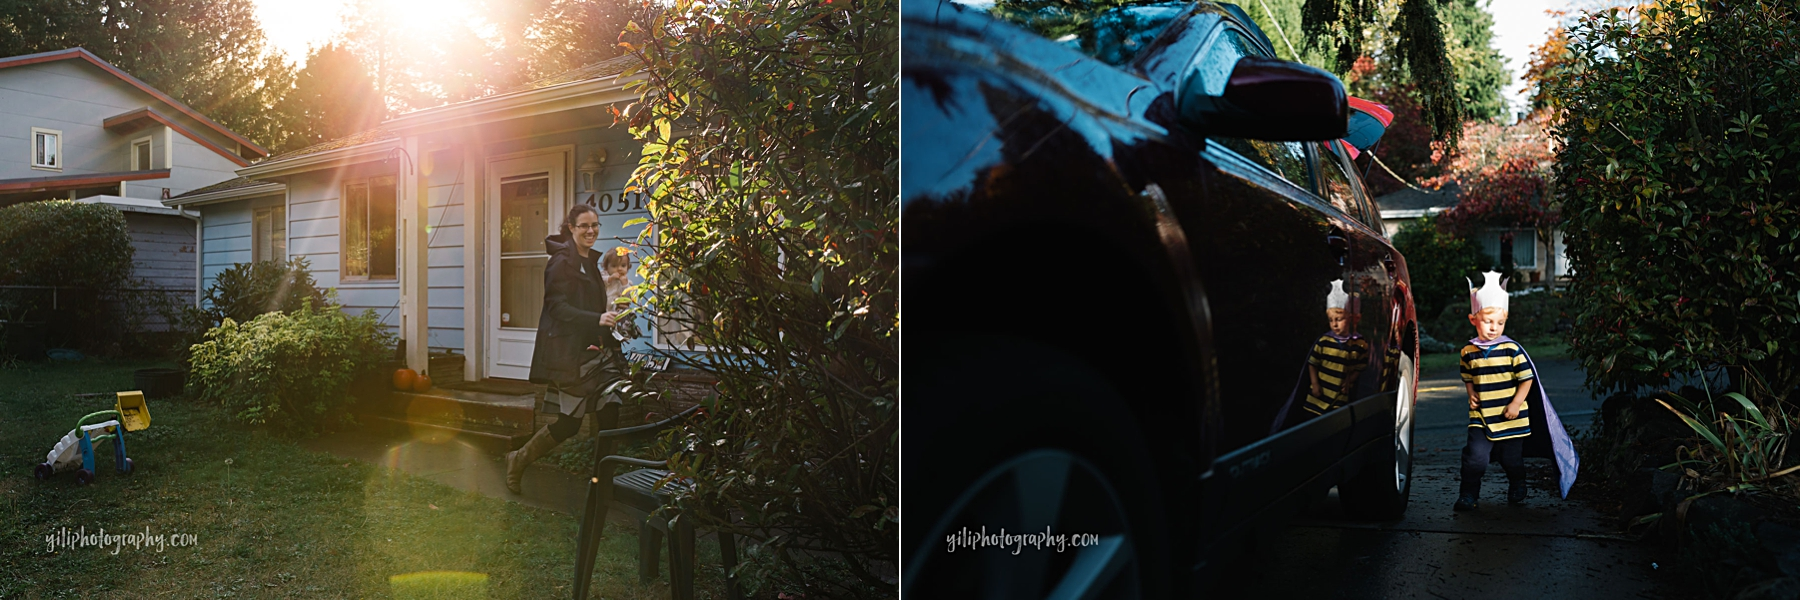 Mom holding toddler girl in front of house with sunflare and boy looking at his reflection in car